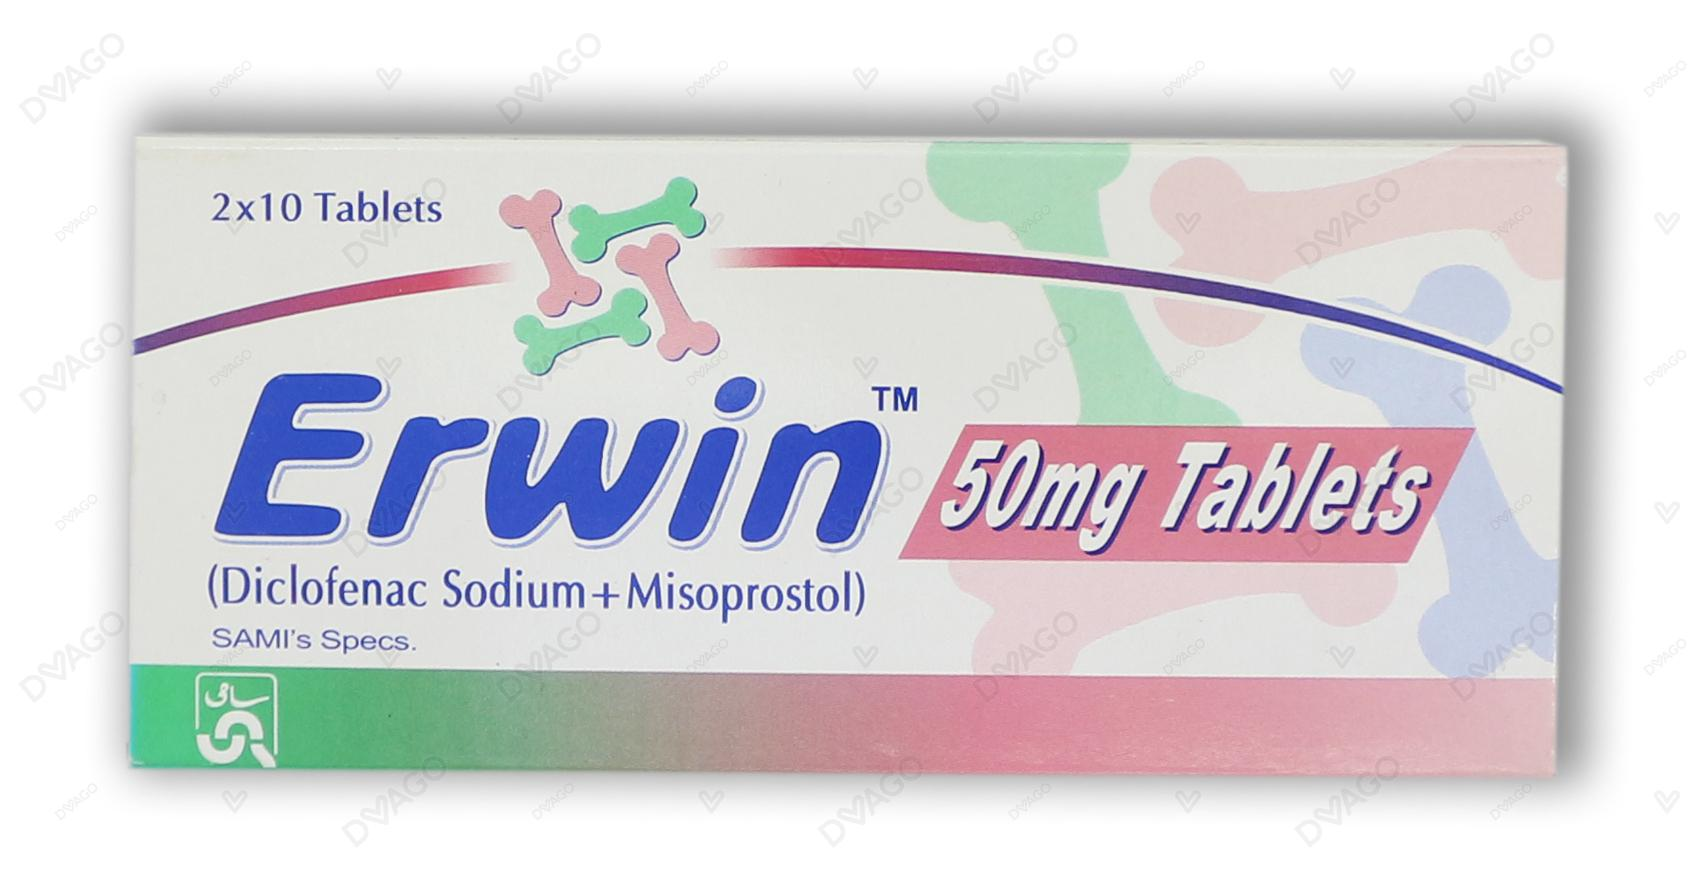 Erwin 50mg Tablets 20's